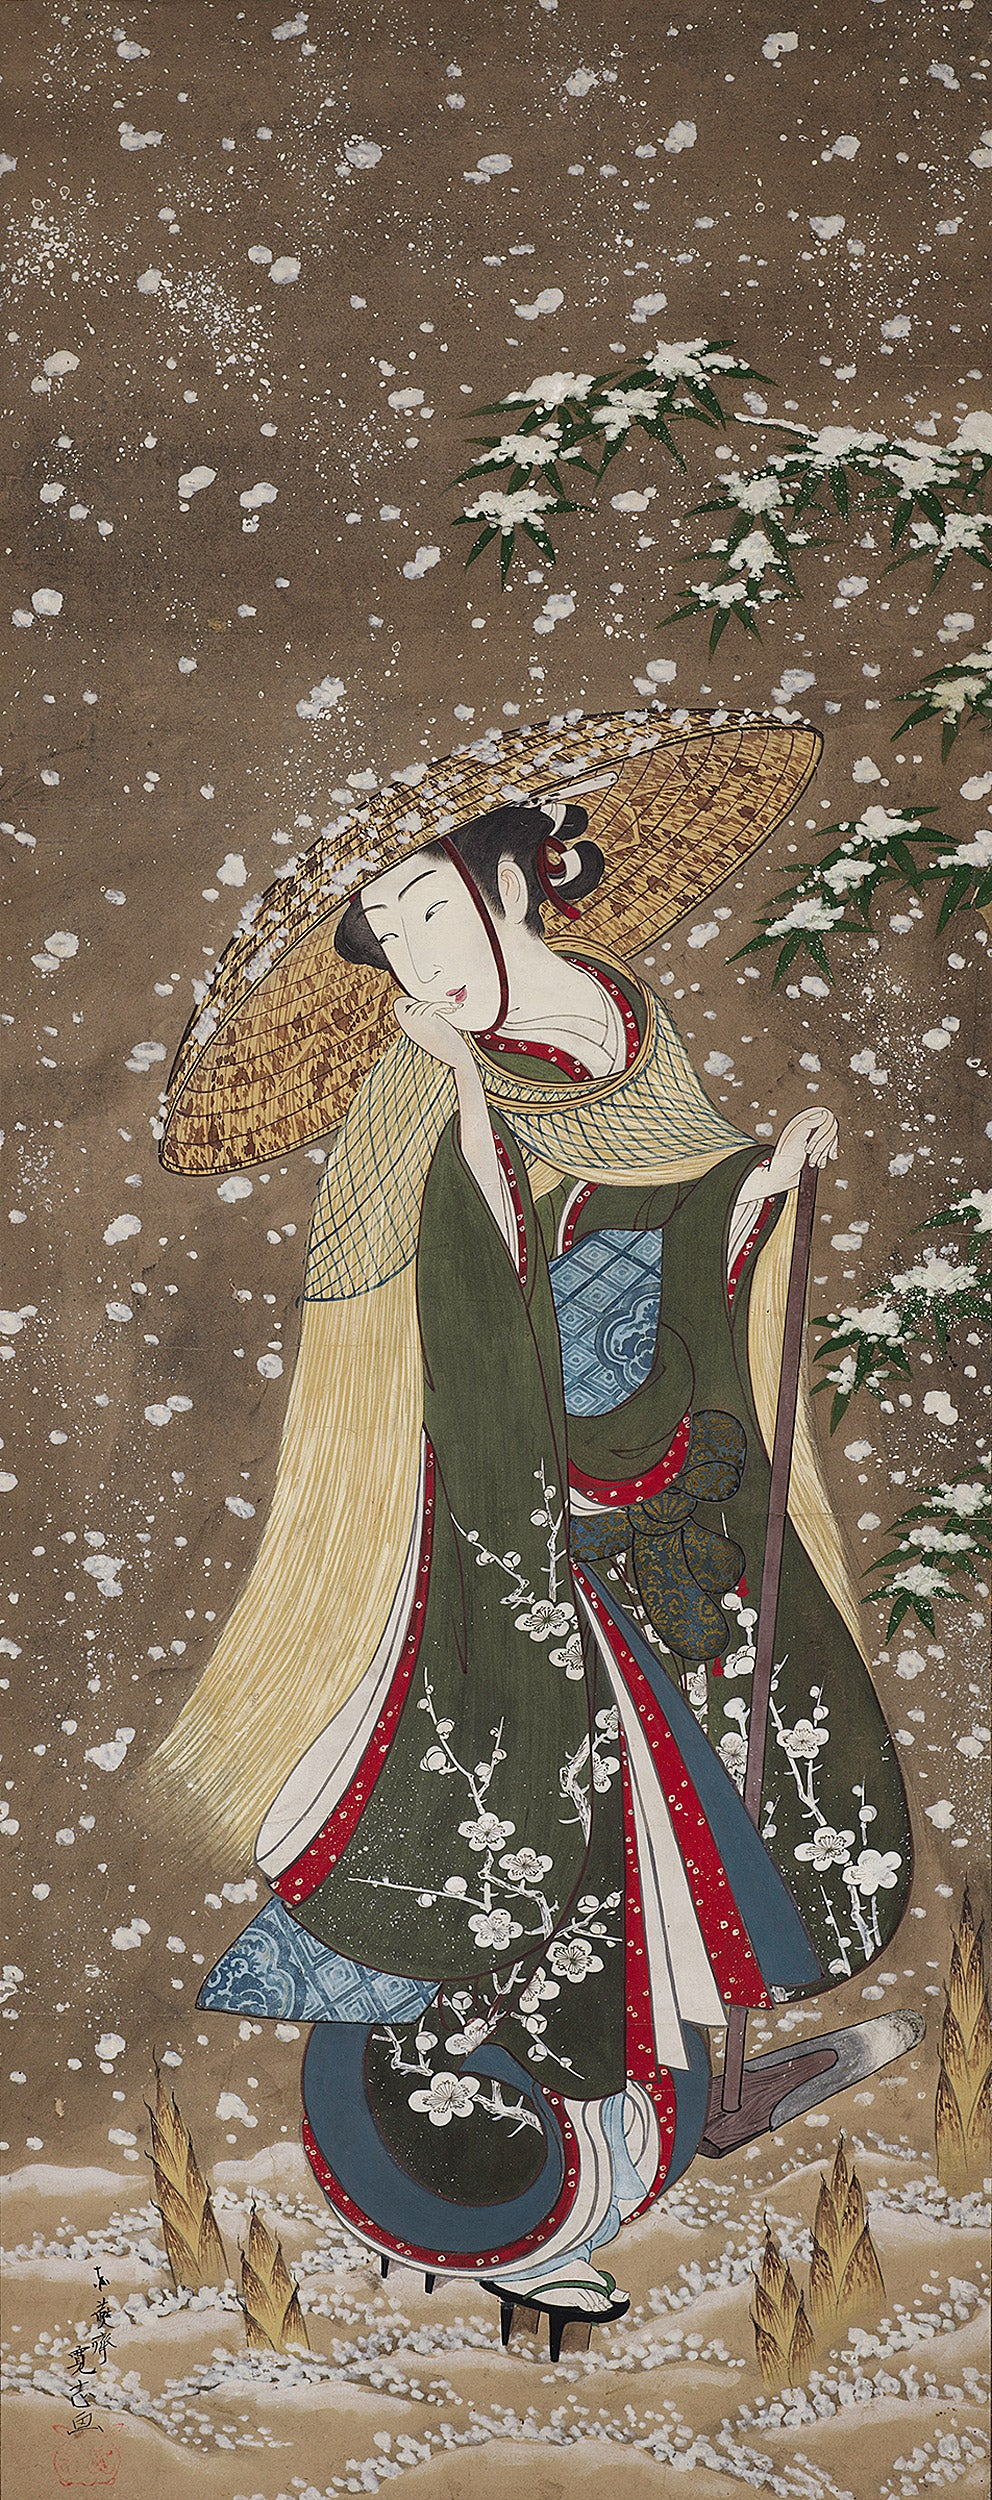 Scroll depicts woman in hat walking through snow with bamboo shoots pushing up through the ground.